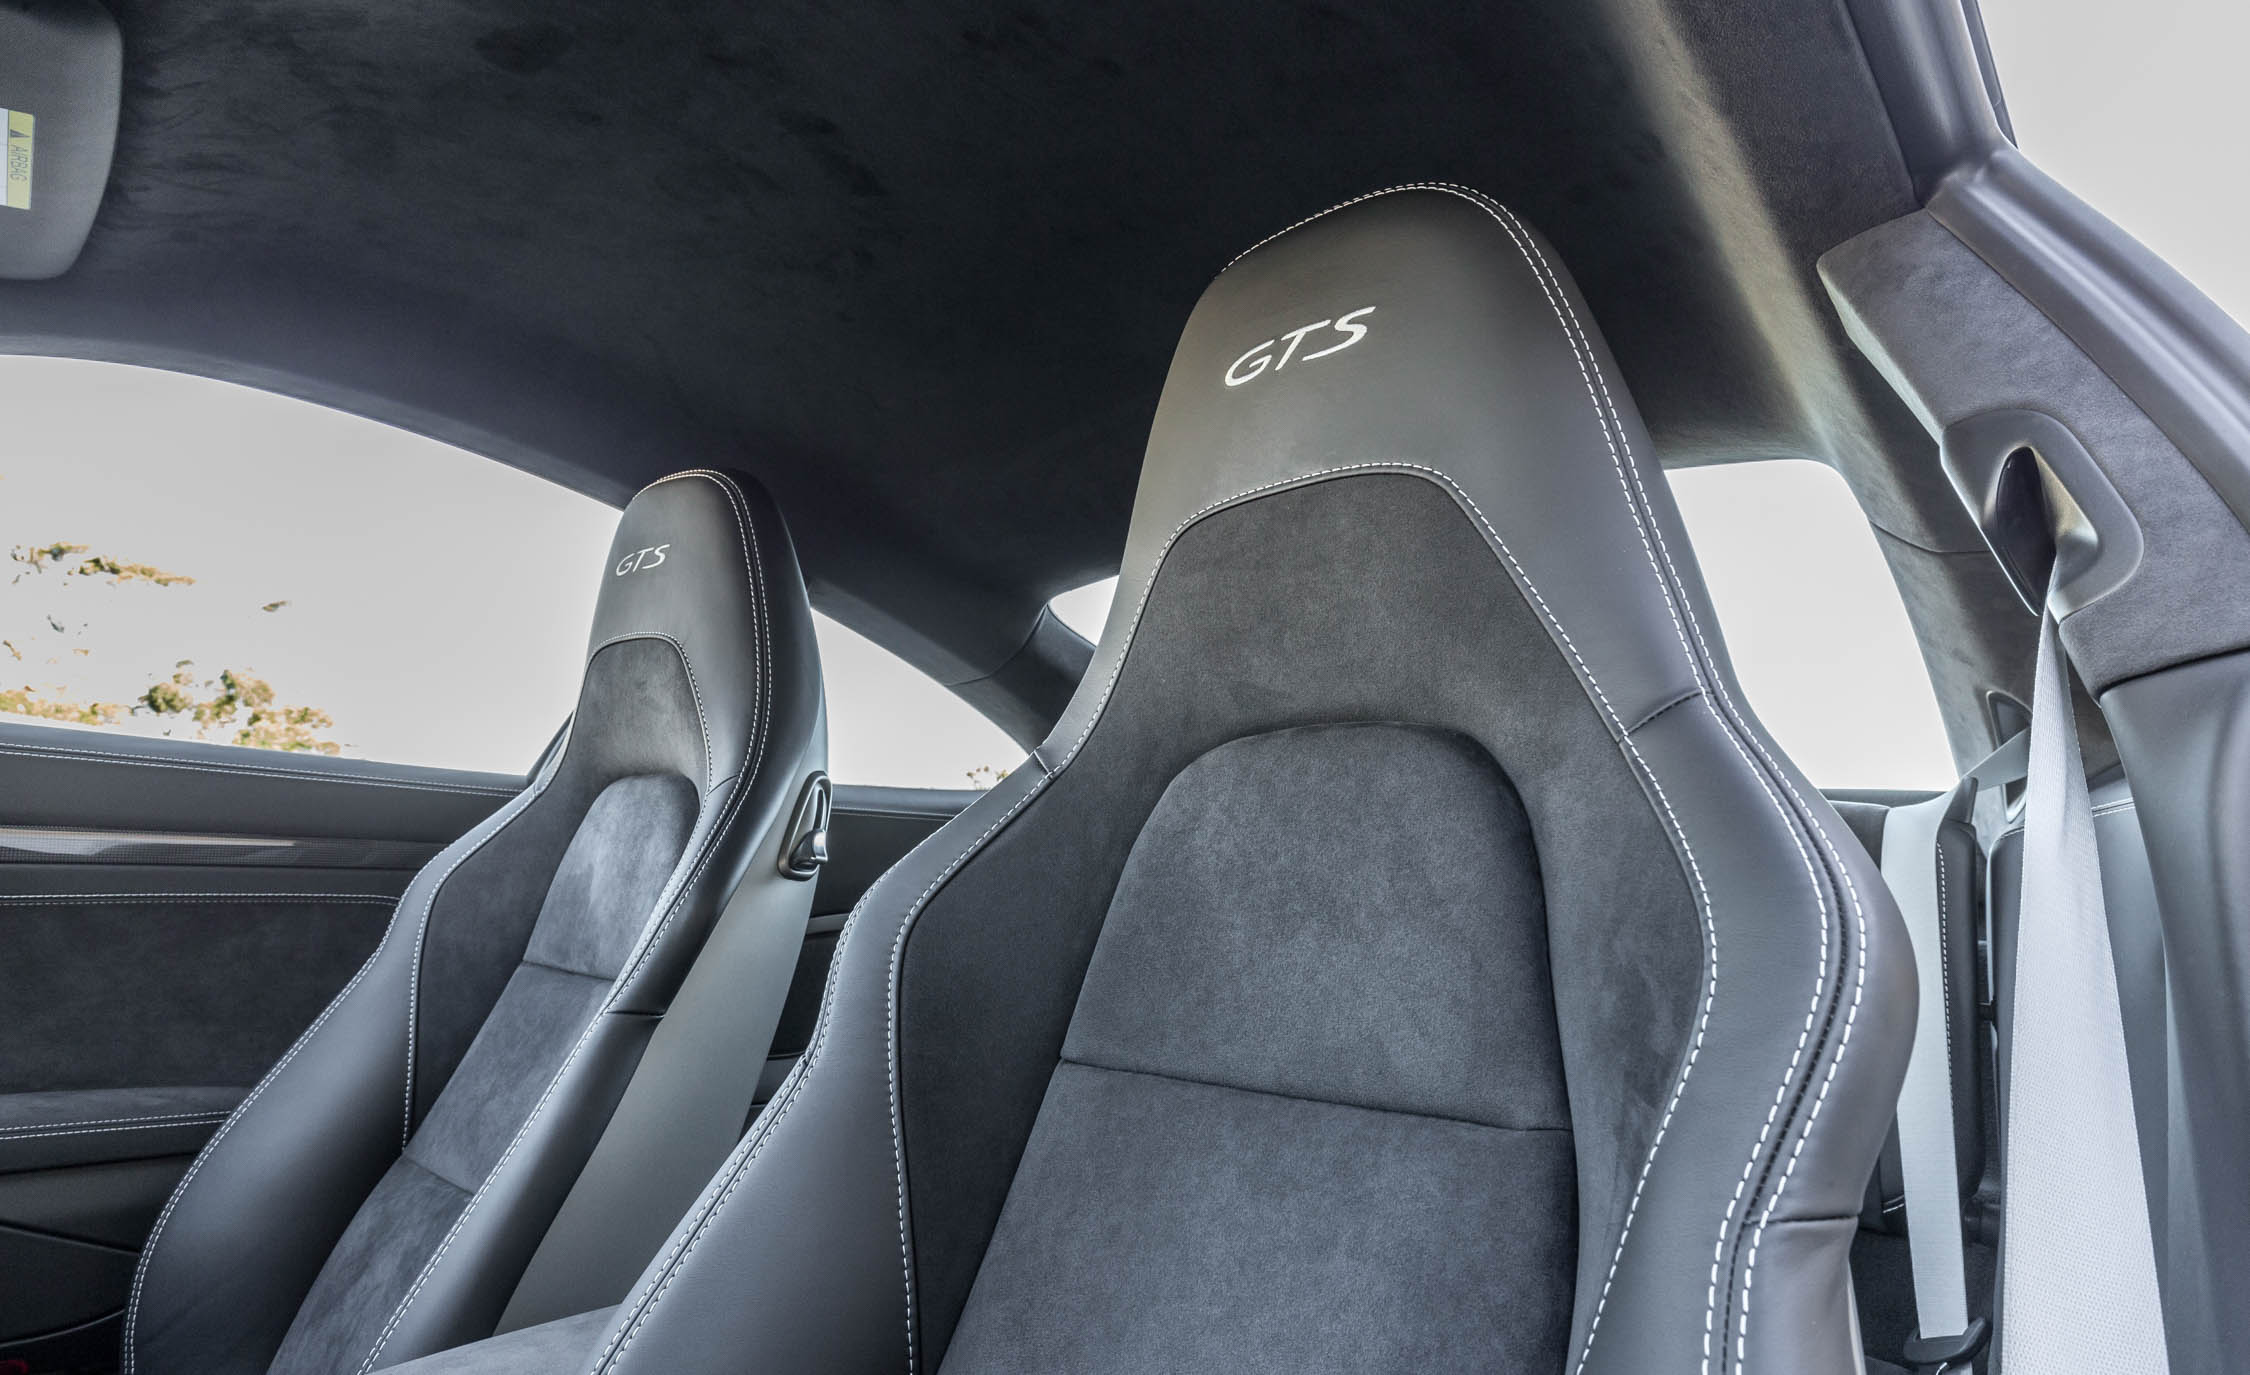 2017 Porsche 911 Carrera GTS Coupe Interior Seats (Photo 51 of 97)